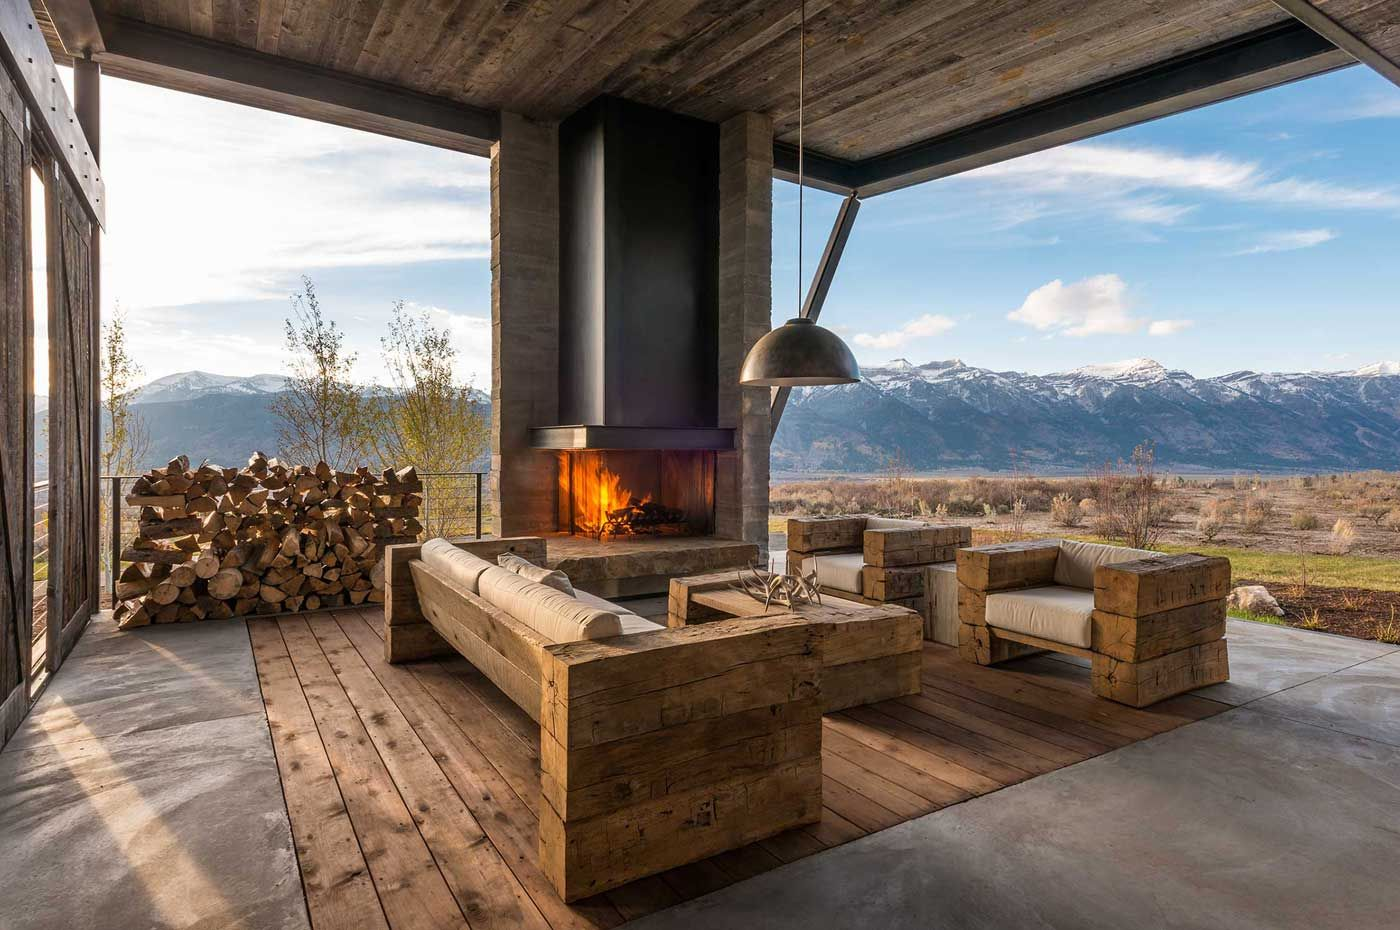 rustic-luxury-home-in-the-mountains-6 | Eco house designs | Pinterest | Home,  The o'jays and Luxury